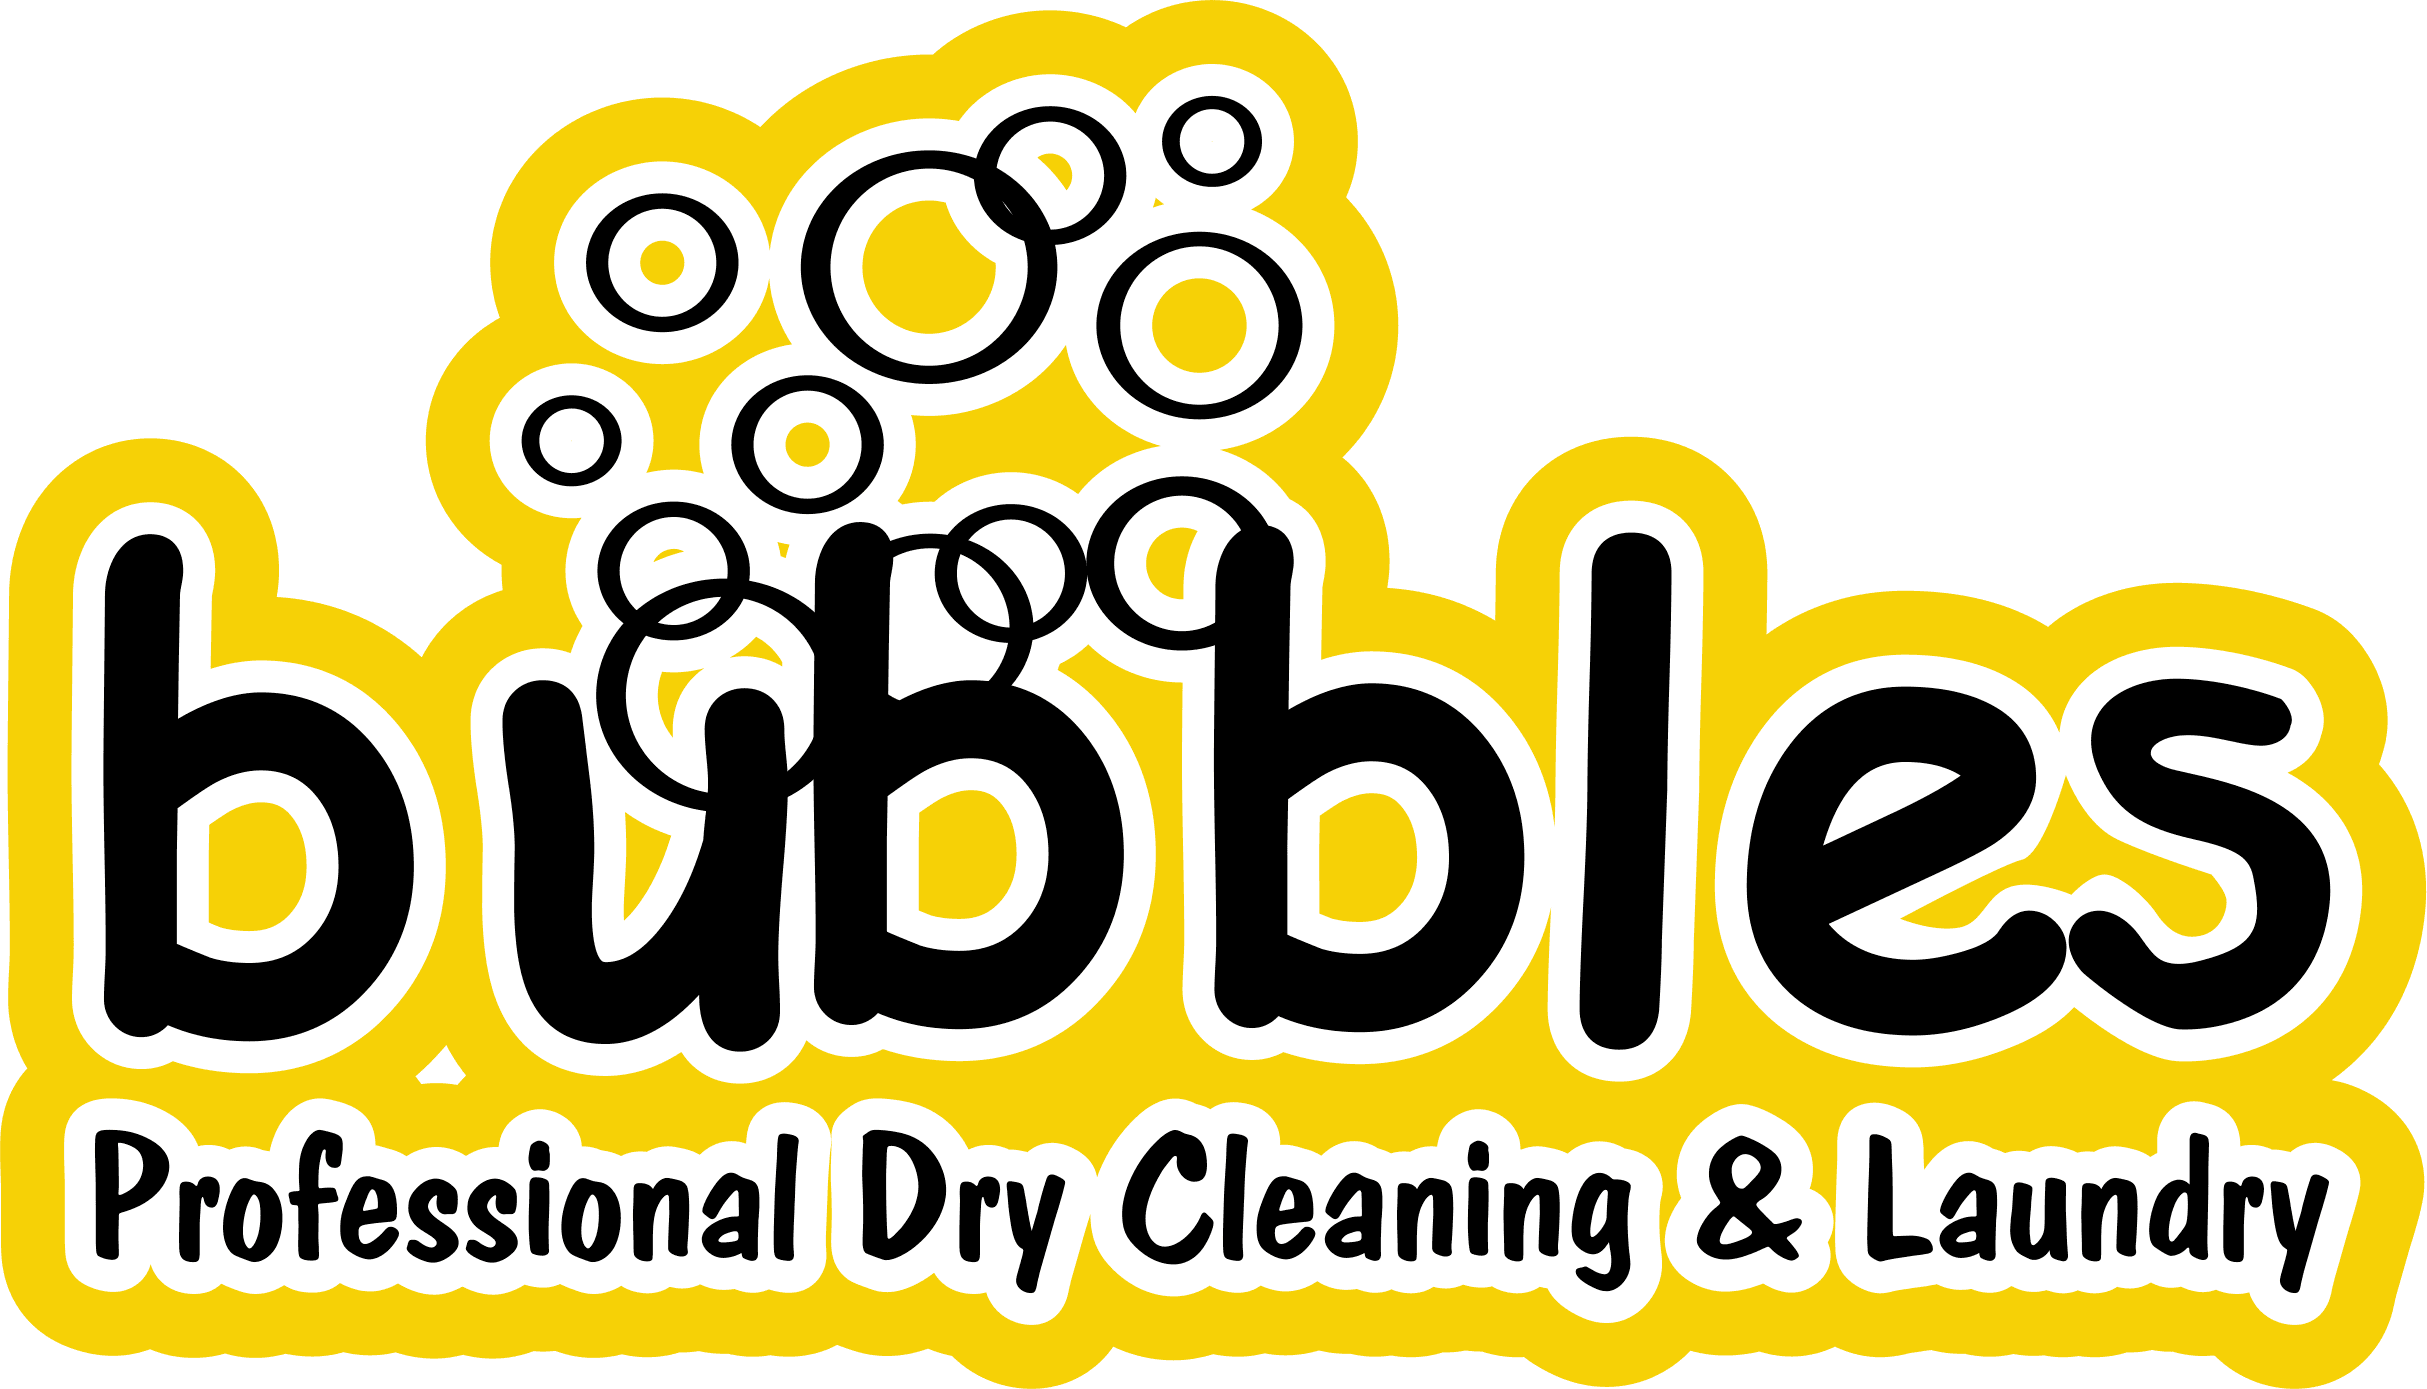 Bubbles Professional Dry Cleaning & Laundry - Logo